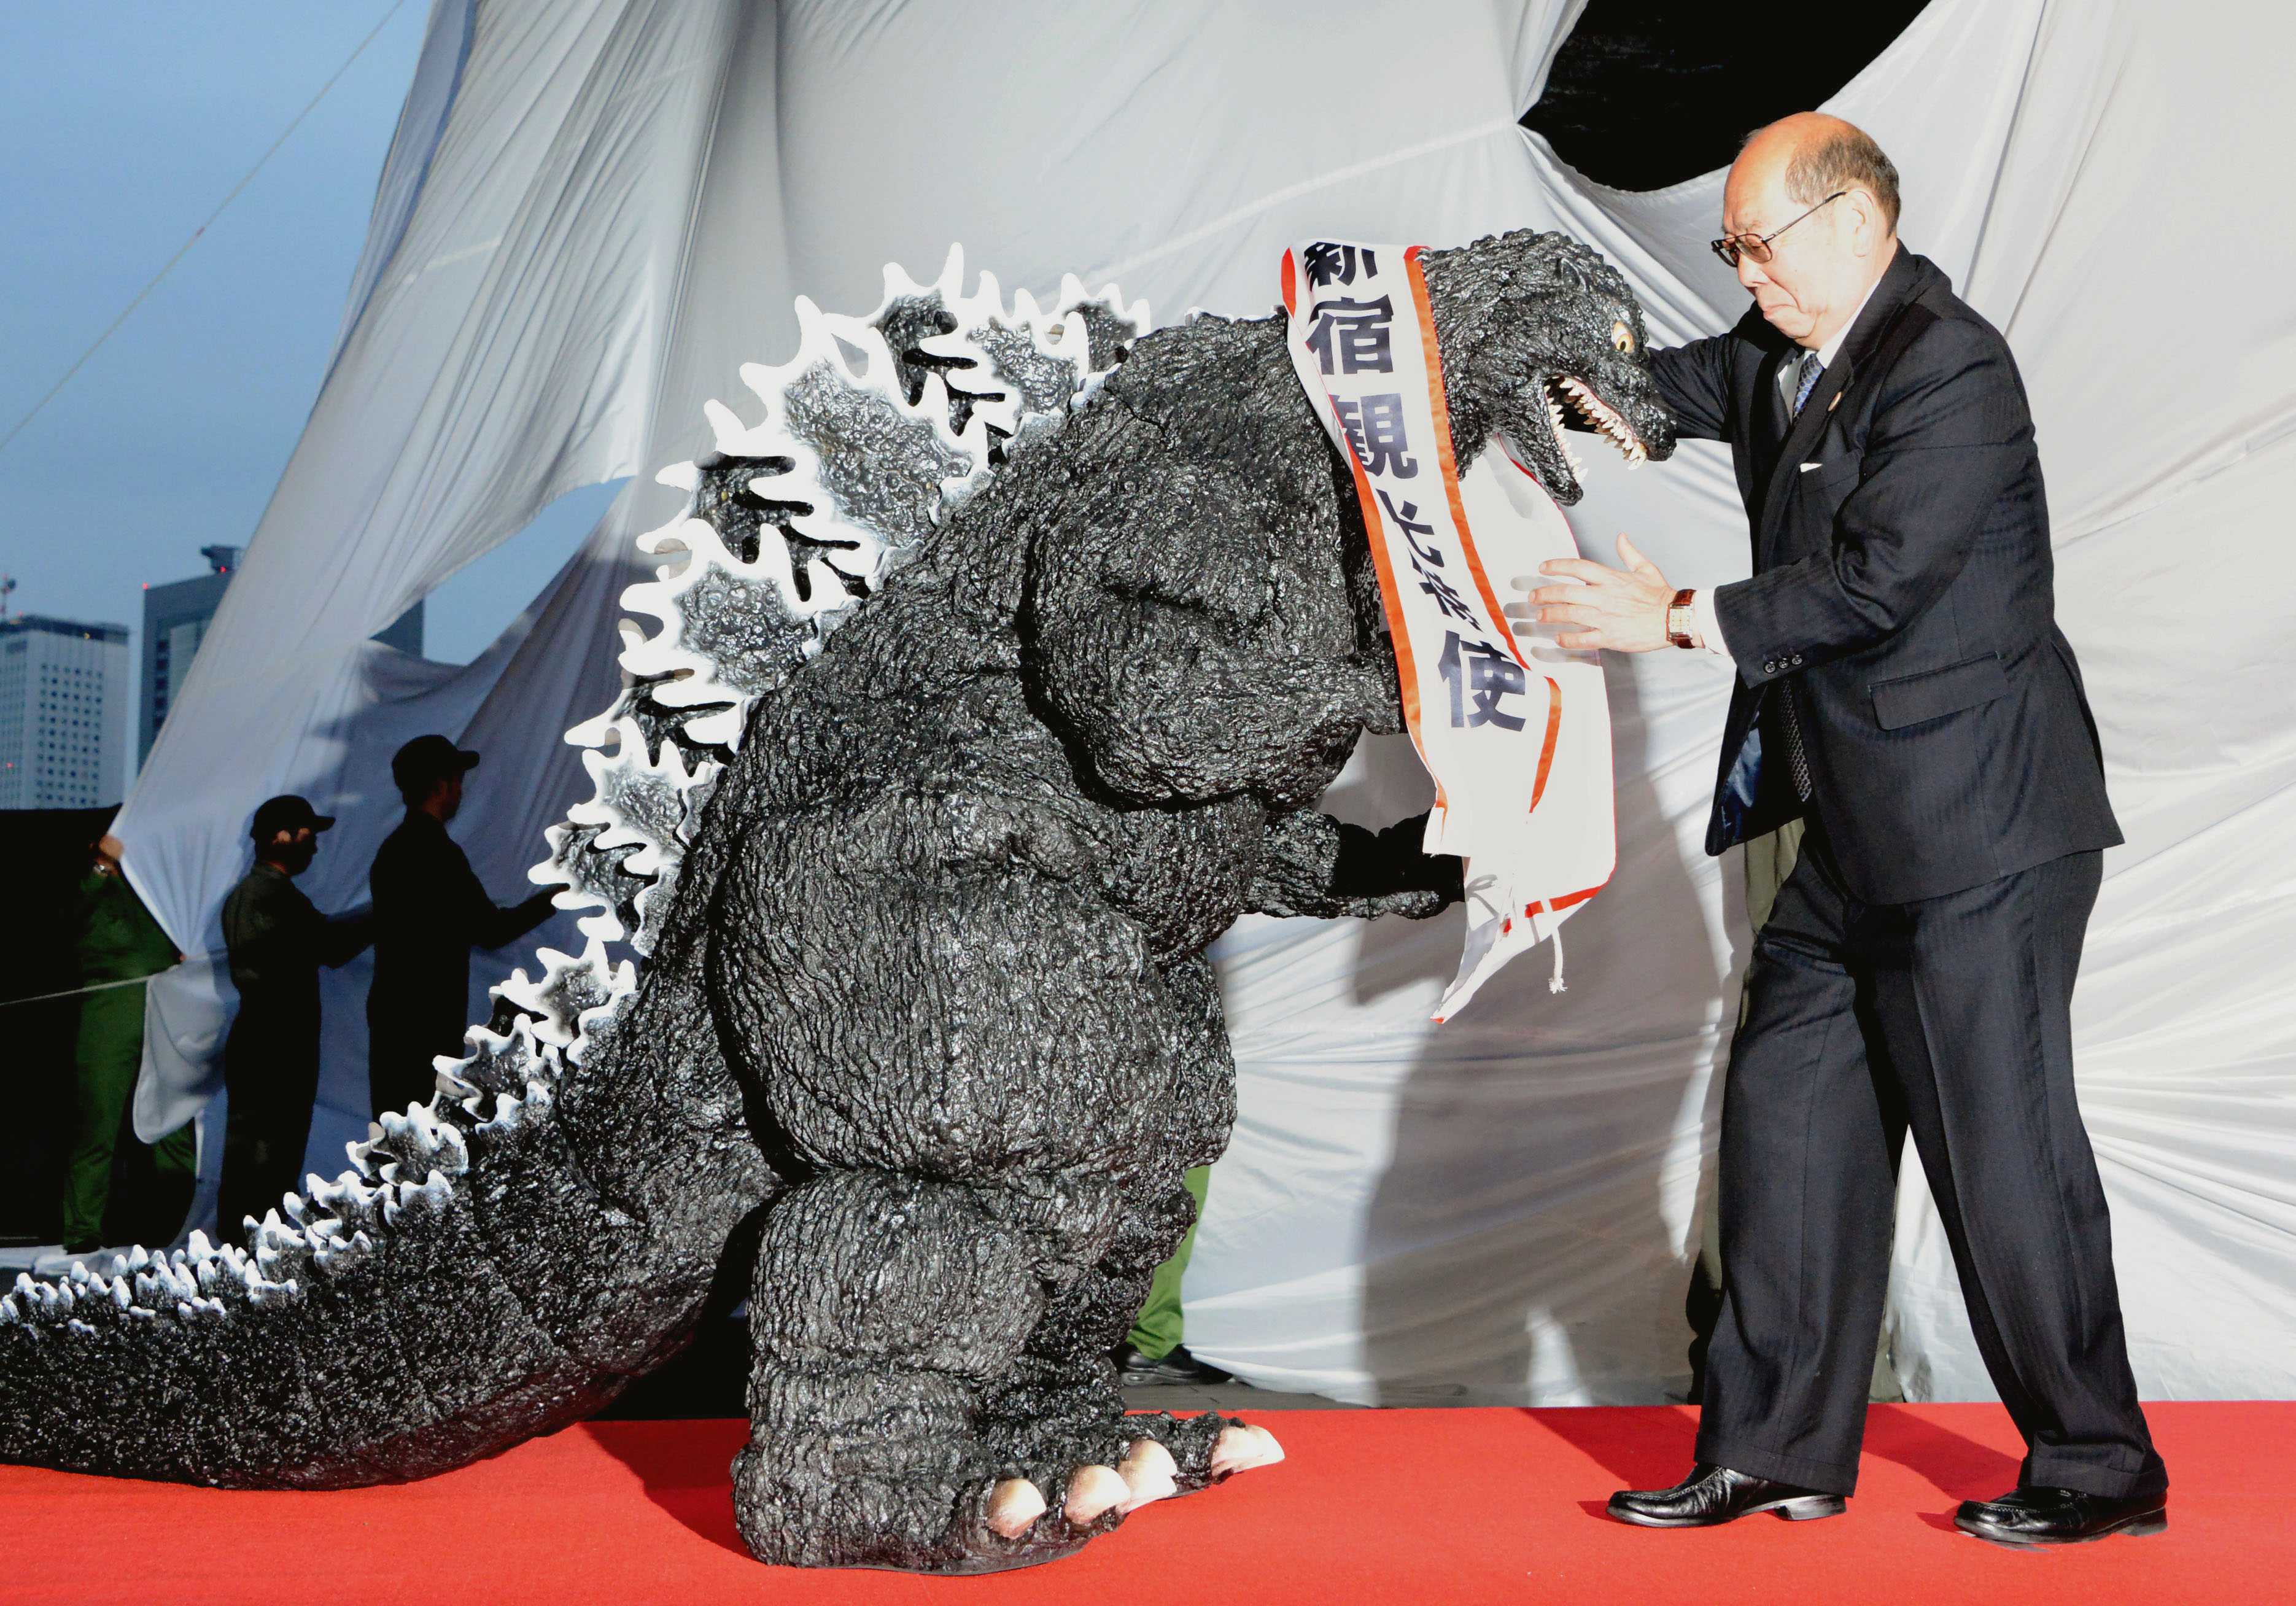 King of the monsters: Godzilla received a special award for his role in helping tourism in Shinjuku after a model of the monster's head was erected in Tokyo's Kabukicho district. | KYODO